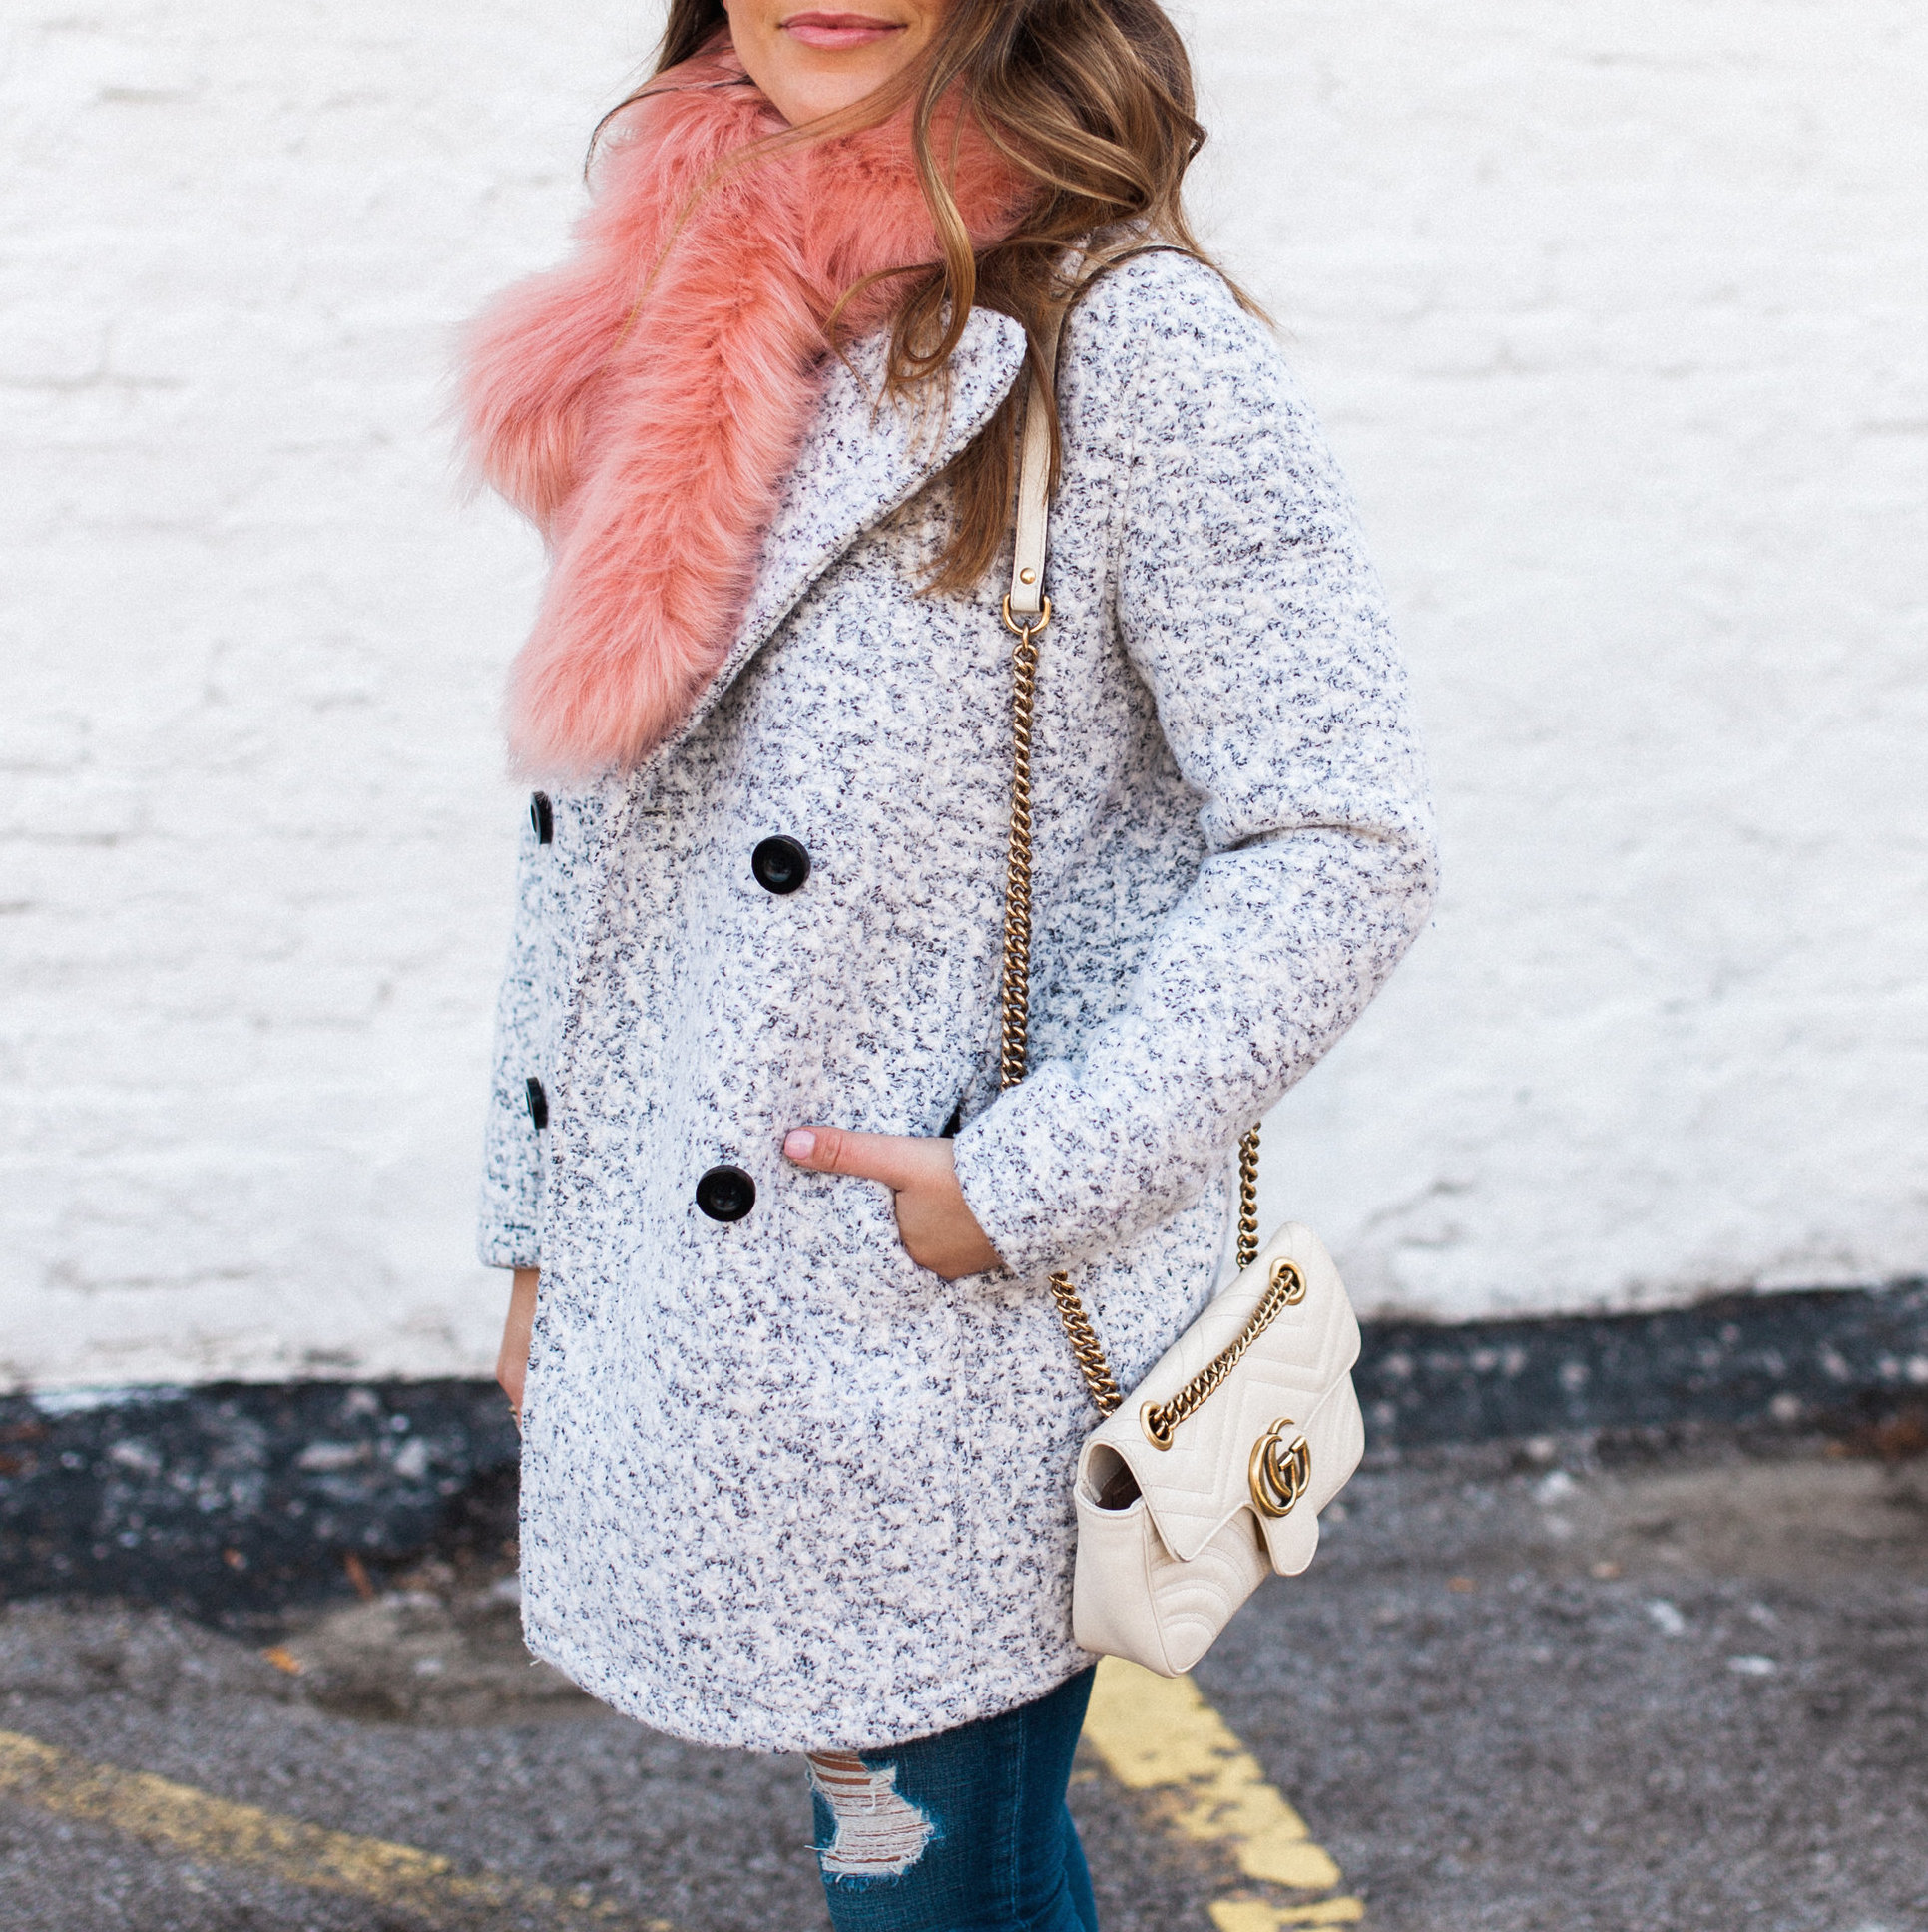 Winter Outfit Inspo ft a Classic Coat